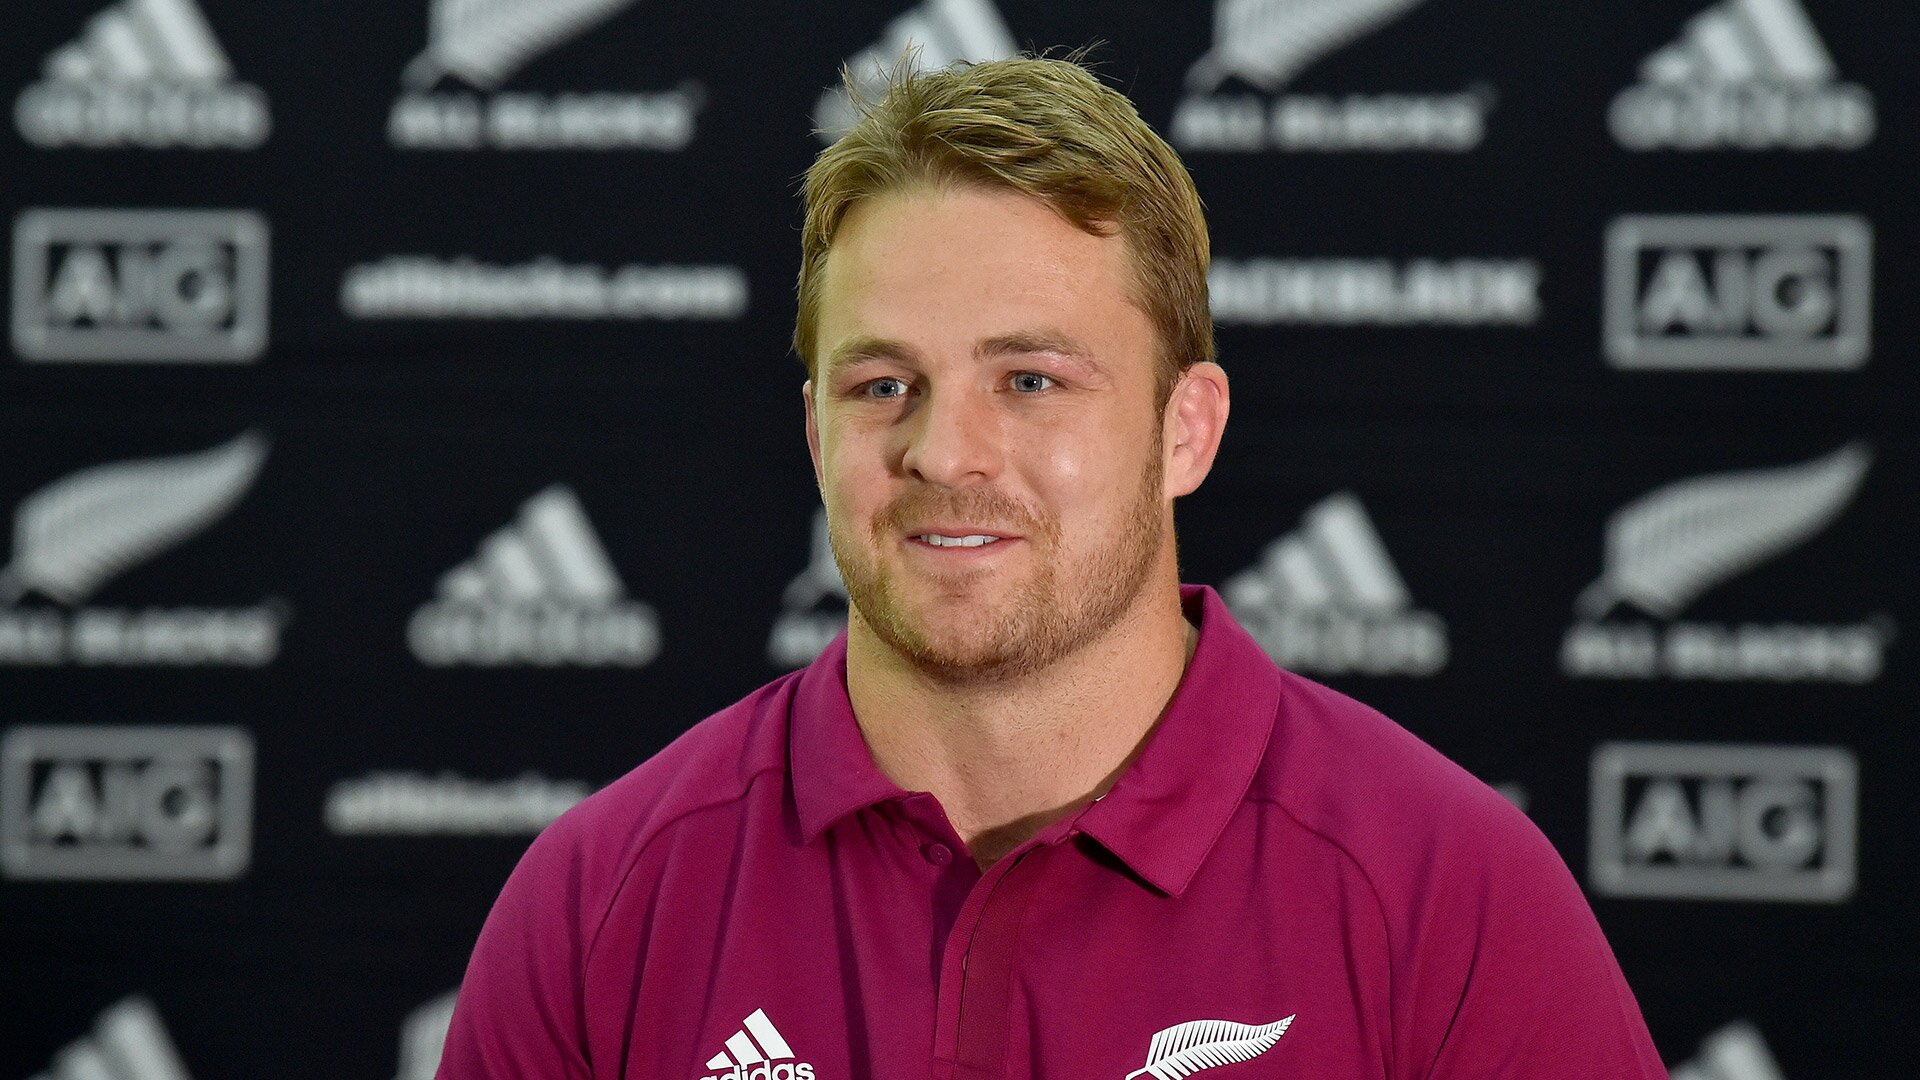 'We're not going to roll over': Sam Cane speaks out about All Blacks scheduling 'blindside'